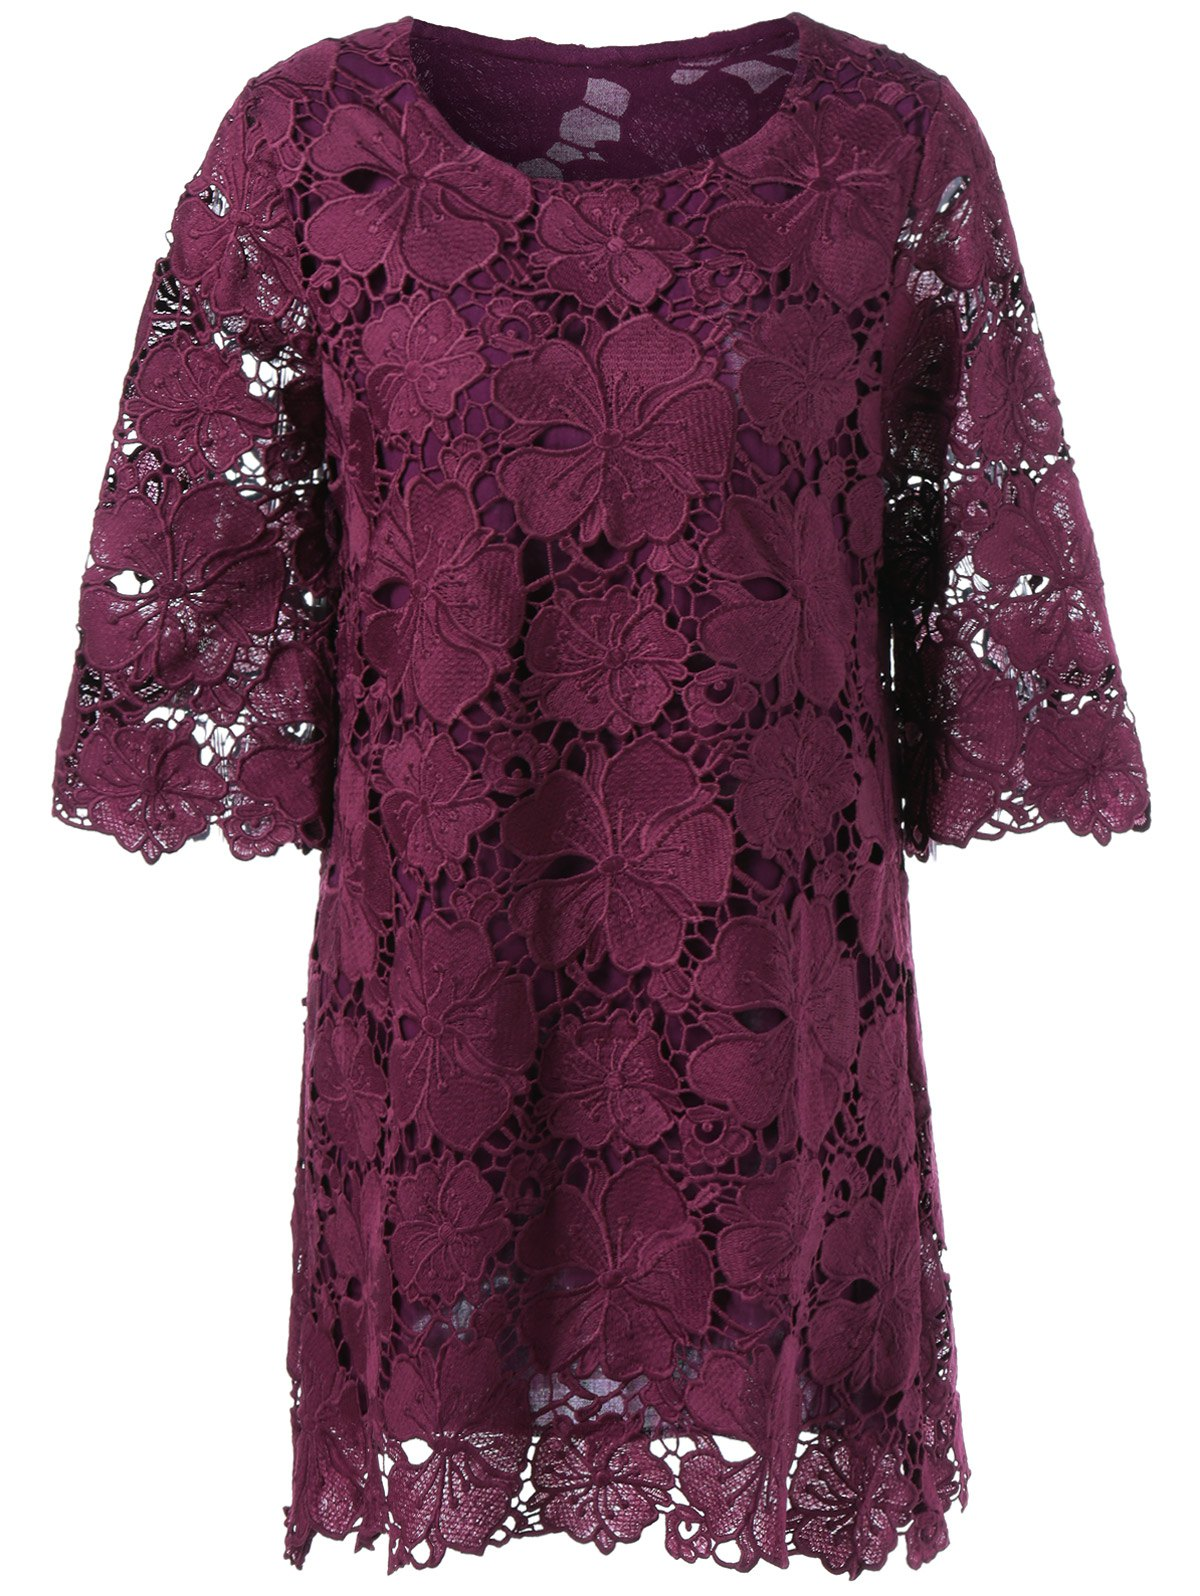 Sheer Lace Floral Overlay Shift Dress - DARK RED L